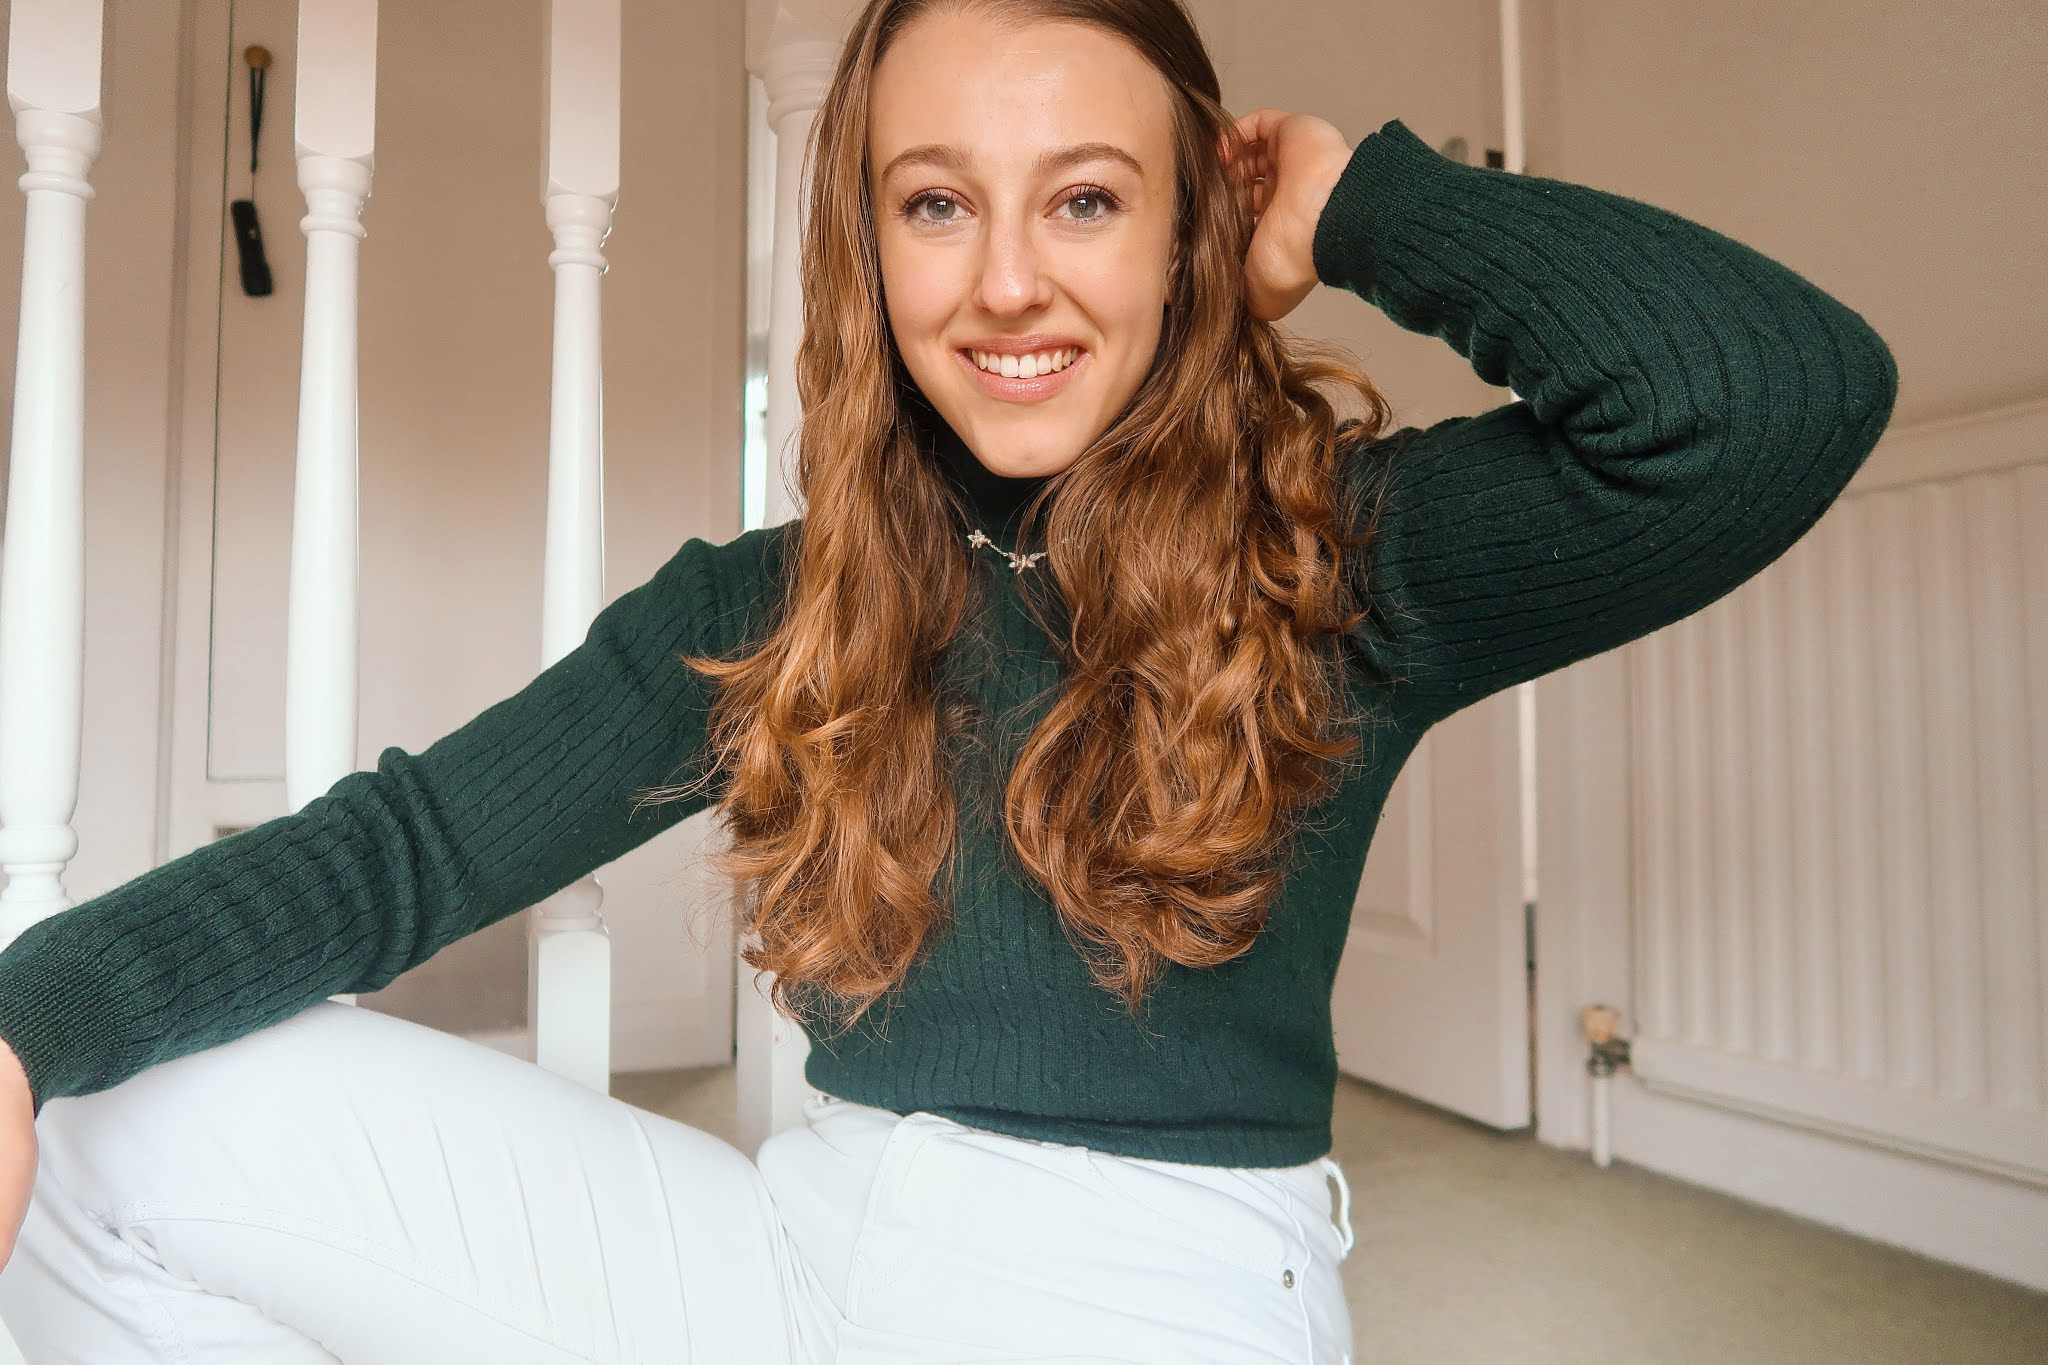 Georgie in her house wearing a green turtleneck and white jeans